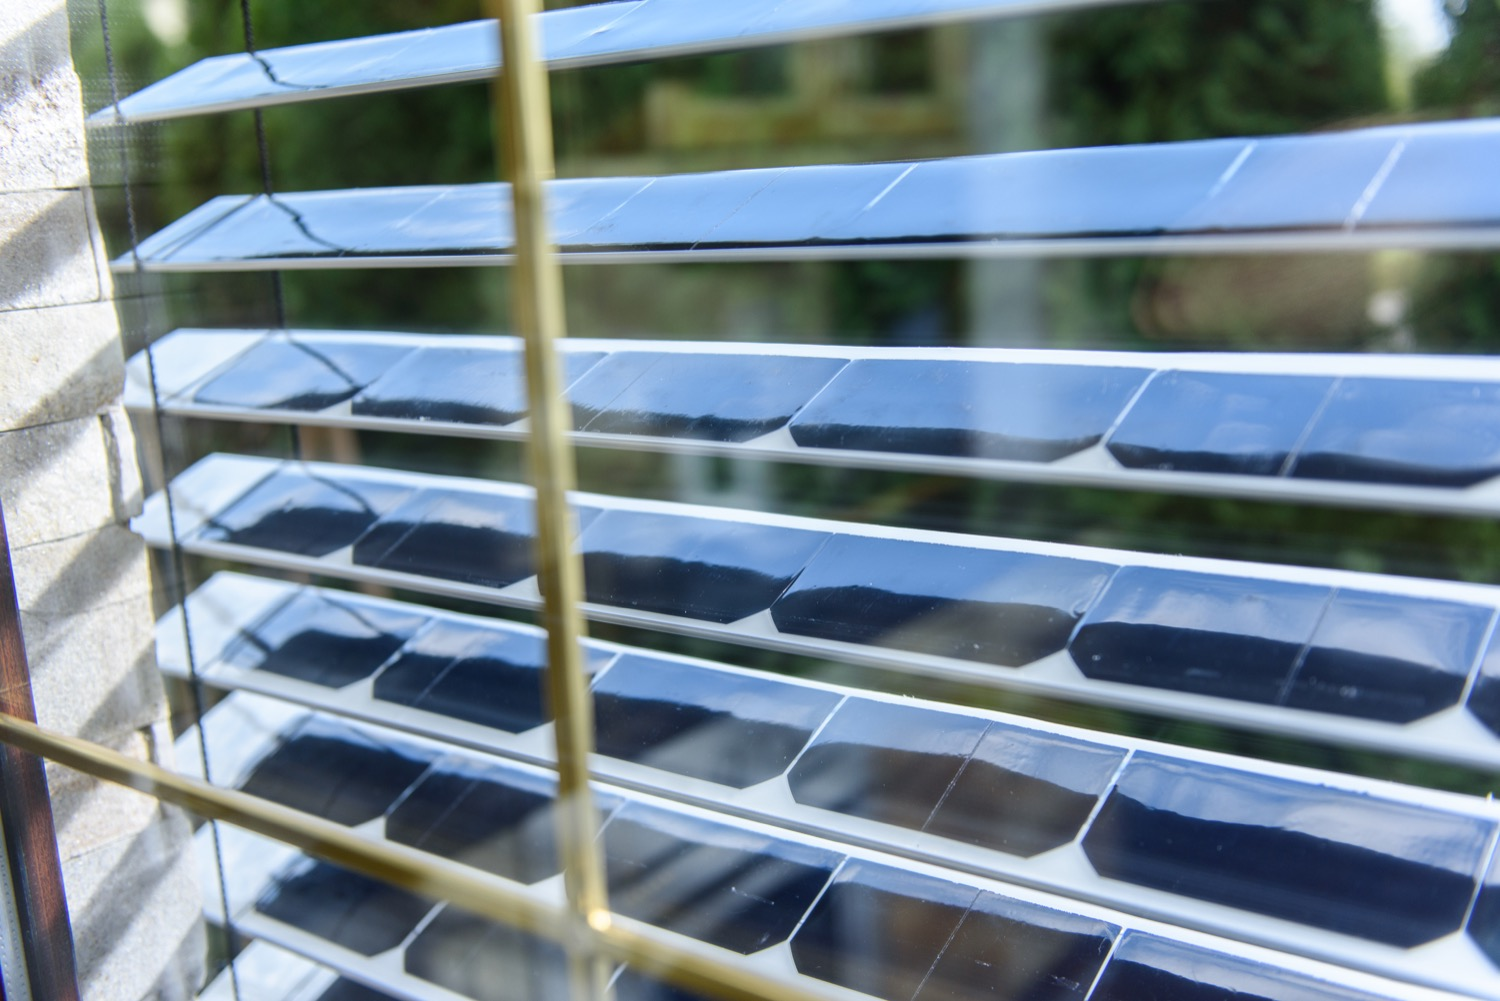 Your Windows Become Powerful With Solargaps Techcrunch